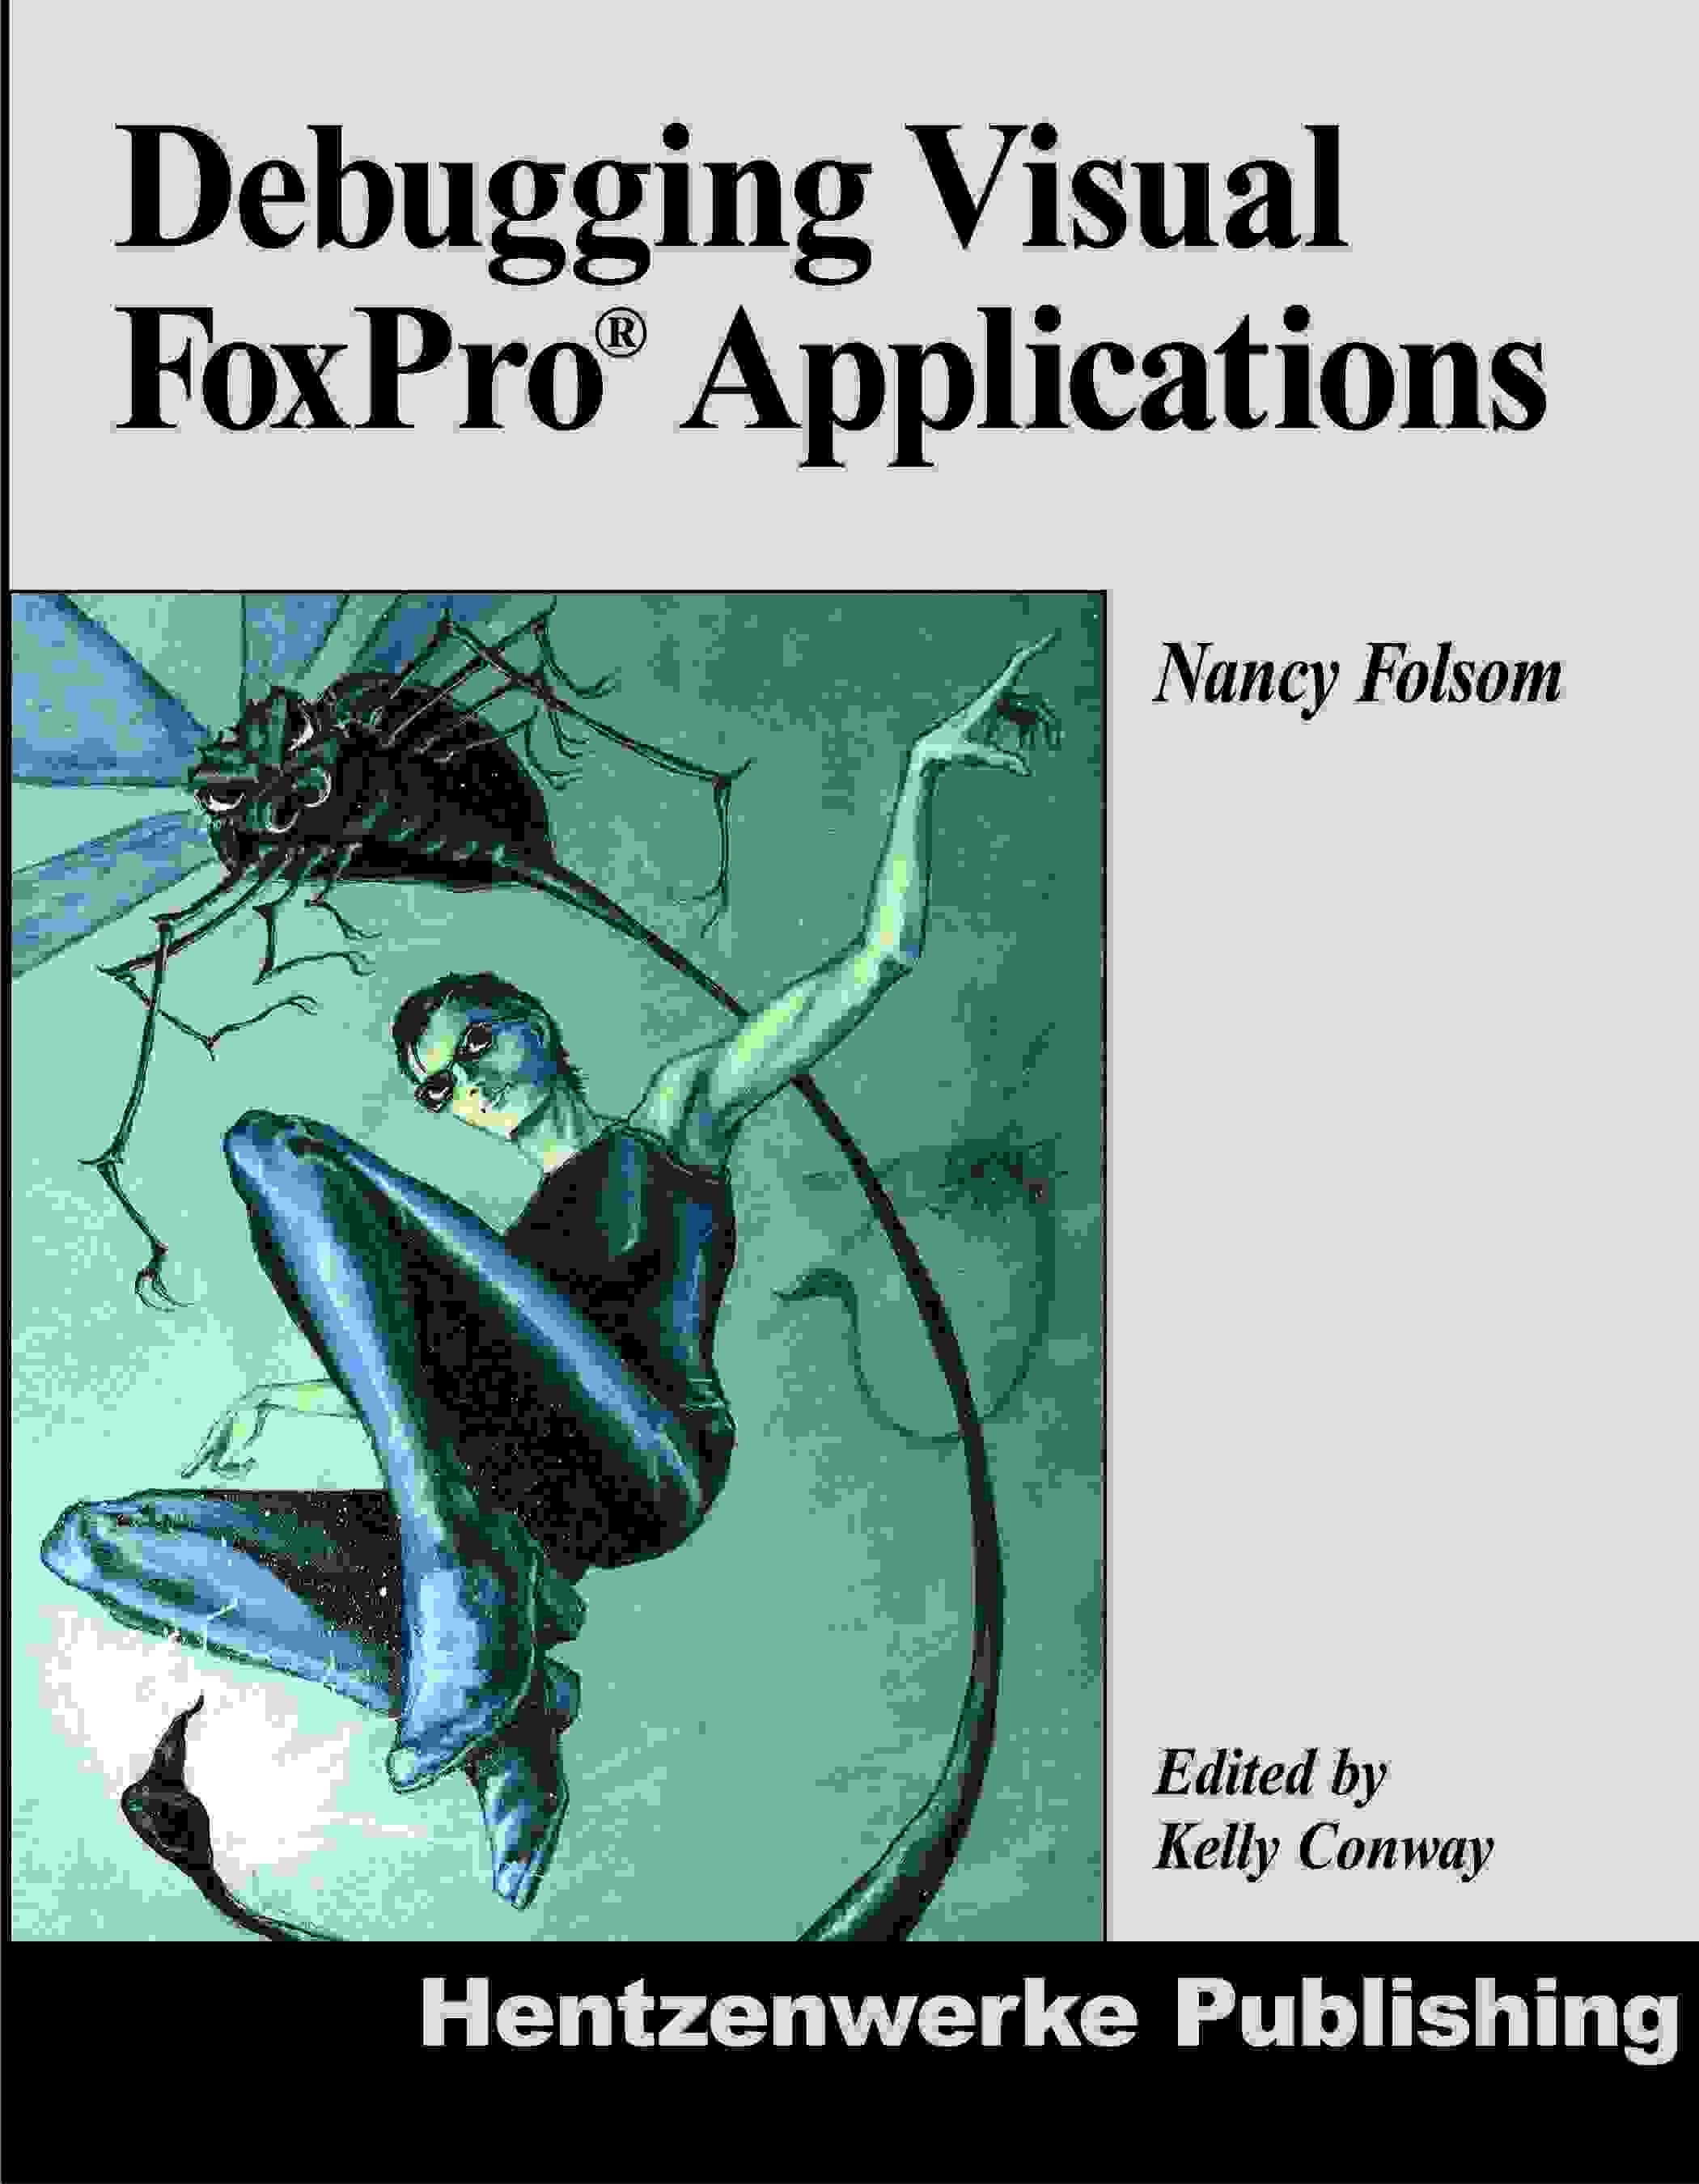 Debugging Visual FoxPro Applications